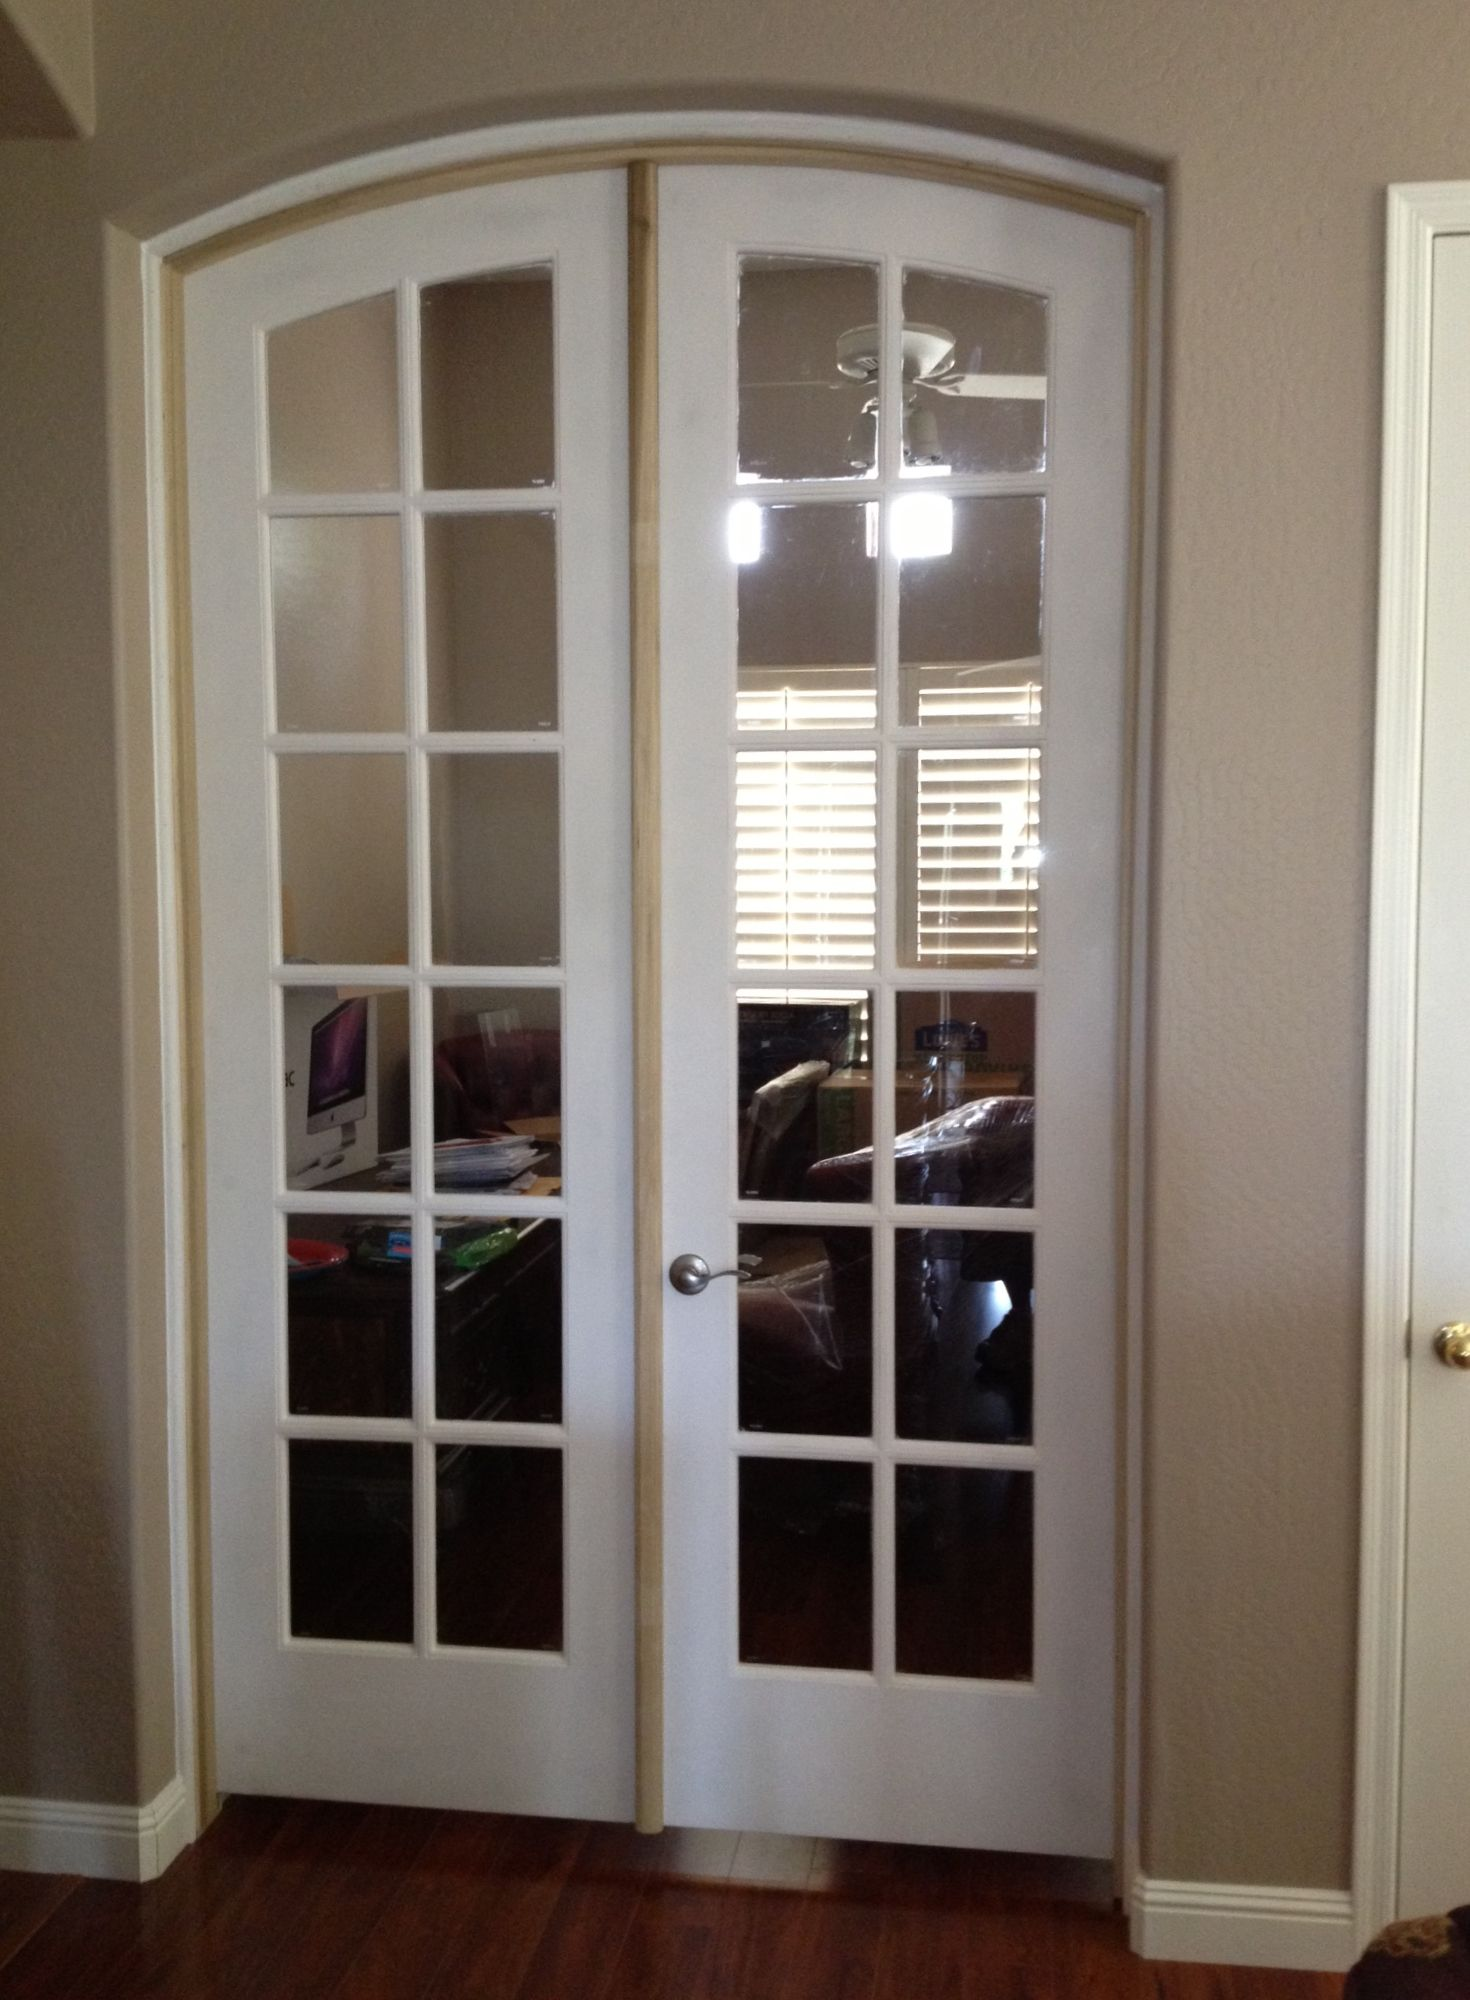 Interior french doors interior french doors - Custom Height Interior French Doors Can Be Designed For Your Order